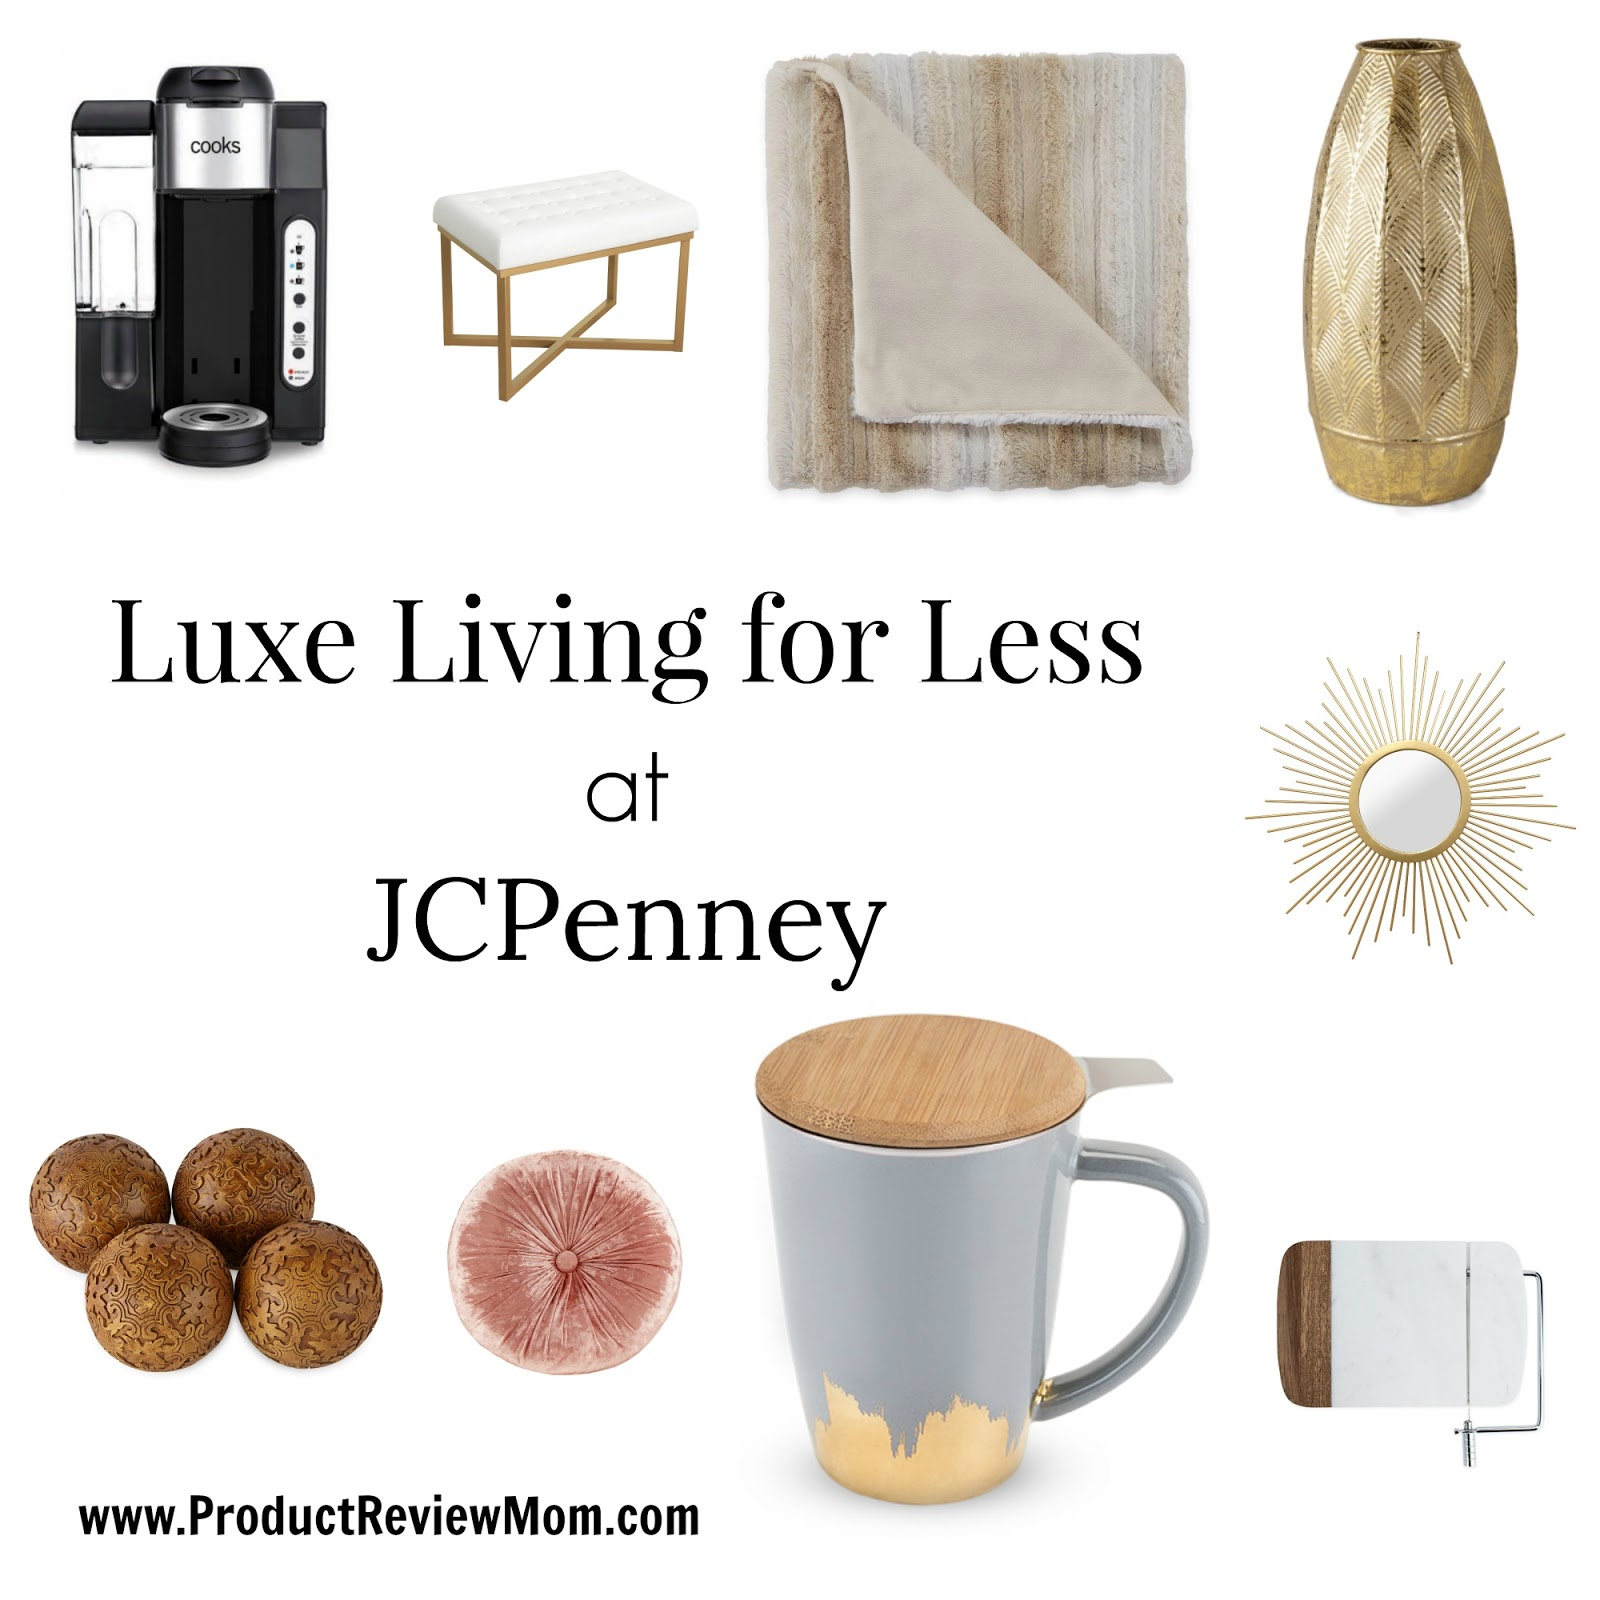 Luxe Living for Less at JCPenney  via  www.productreviewmom.com